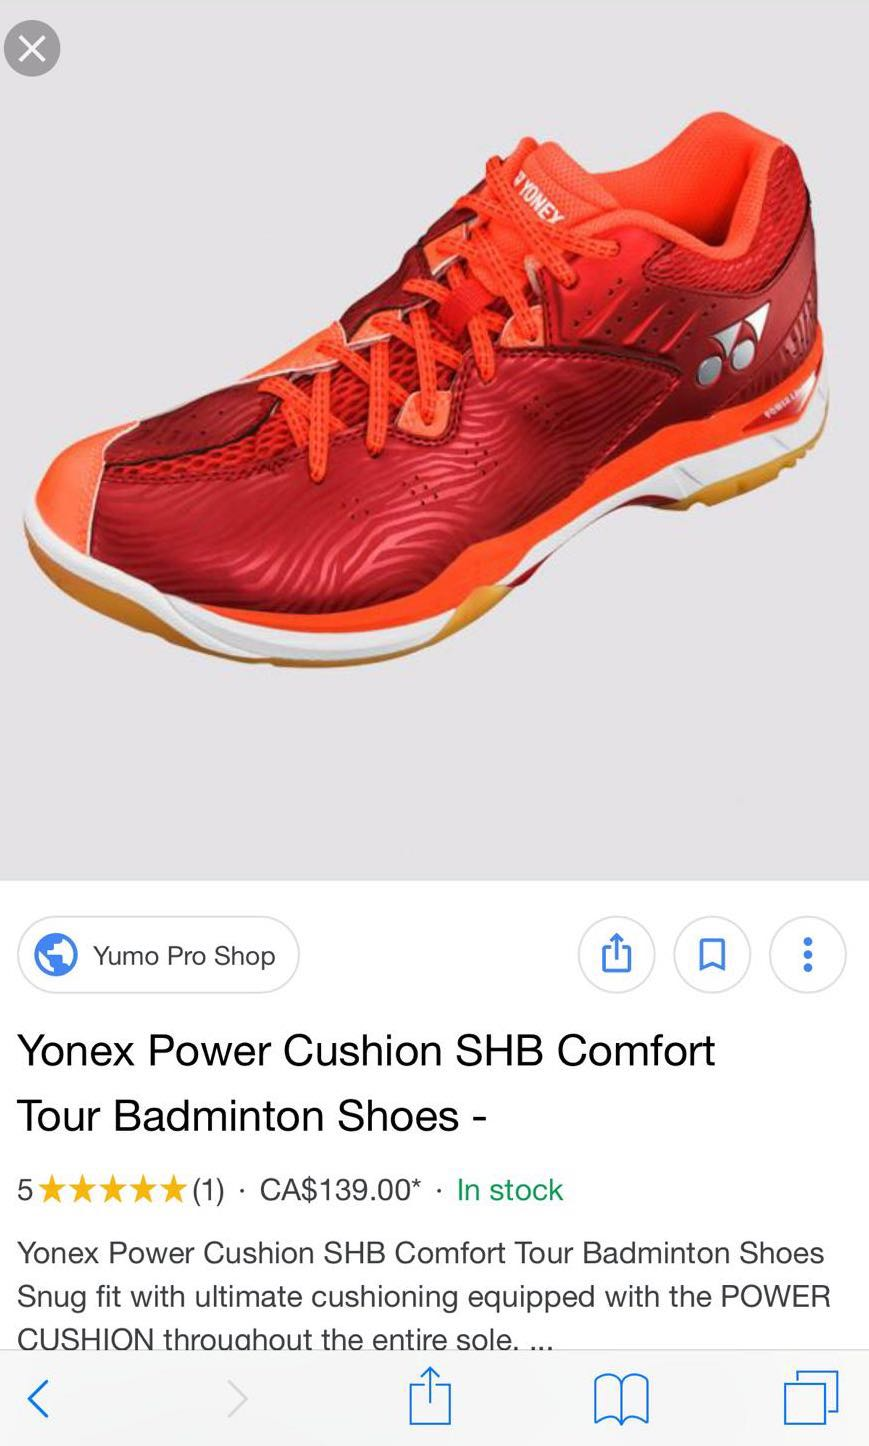 8662a555dcc Yonex Power Cushion SHB Comfort Tour Badminton Shoes, Sports, Sports ...